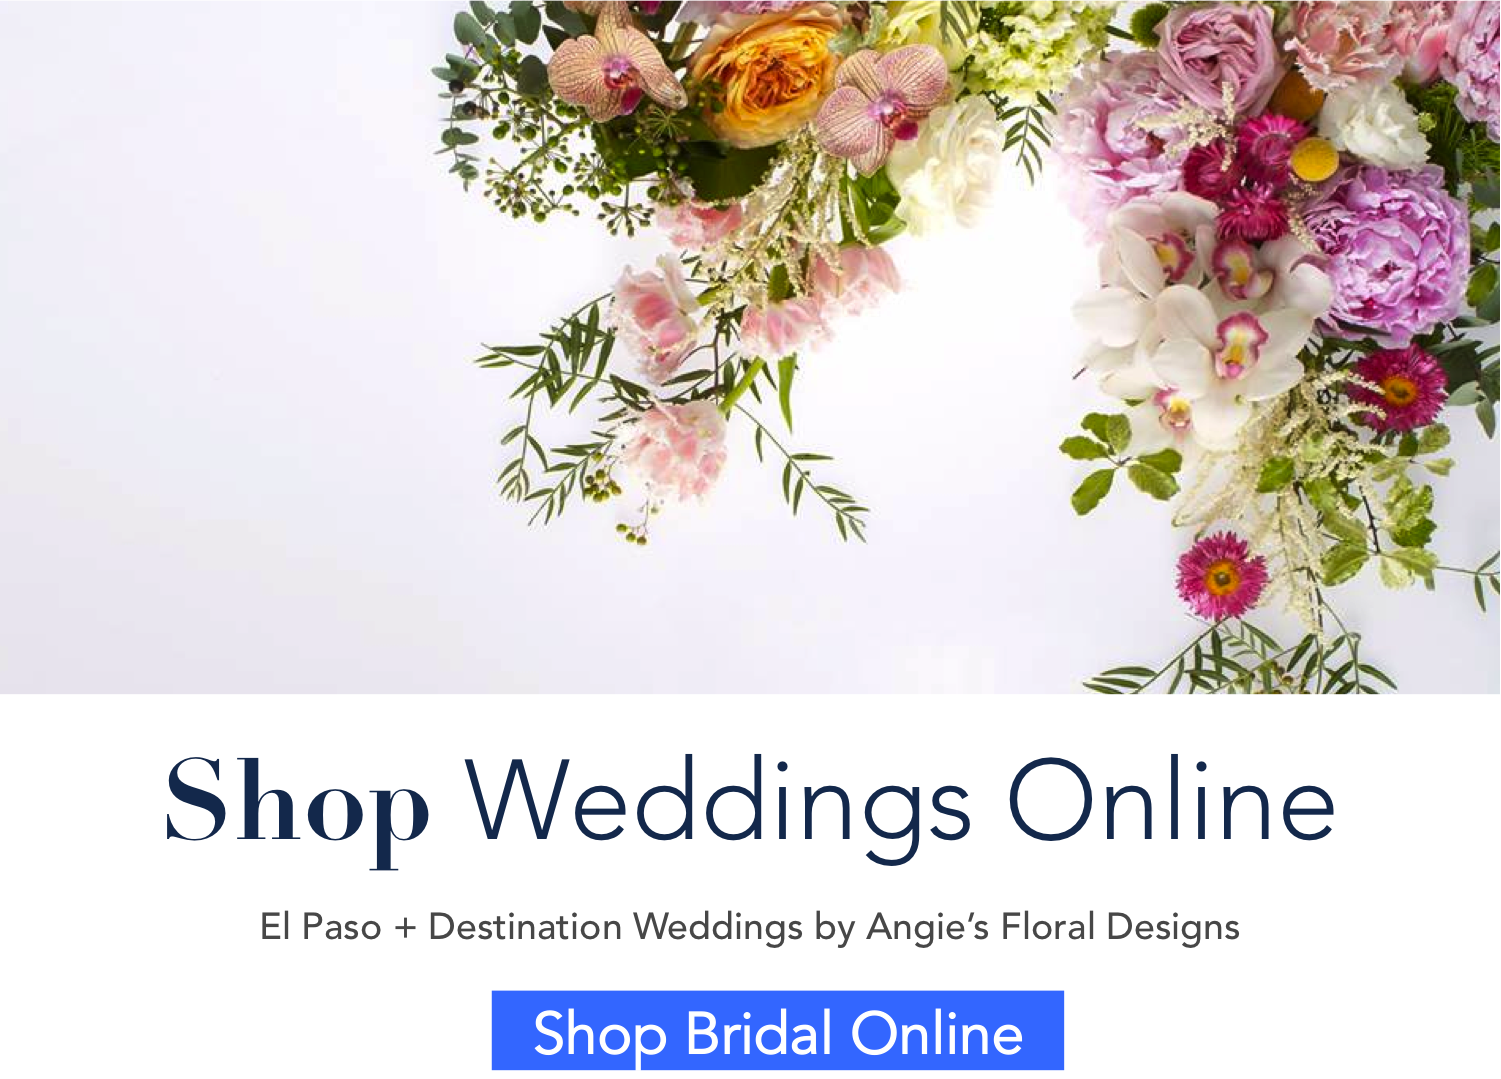 angies-floral-designs-el-paso-texas-austin-wedding-el-paso-weddings-el-paso-bridal-bouquet-el-paso-texas-wedding-el-paso-flowershop-florist-bodas-el-paso-bridal-bouquets-bridal-items-shop-79912.png